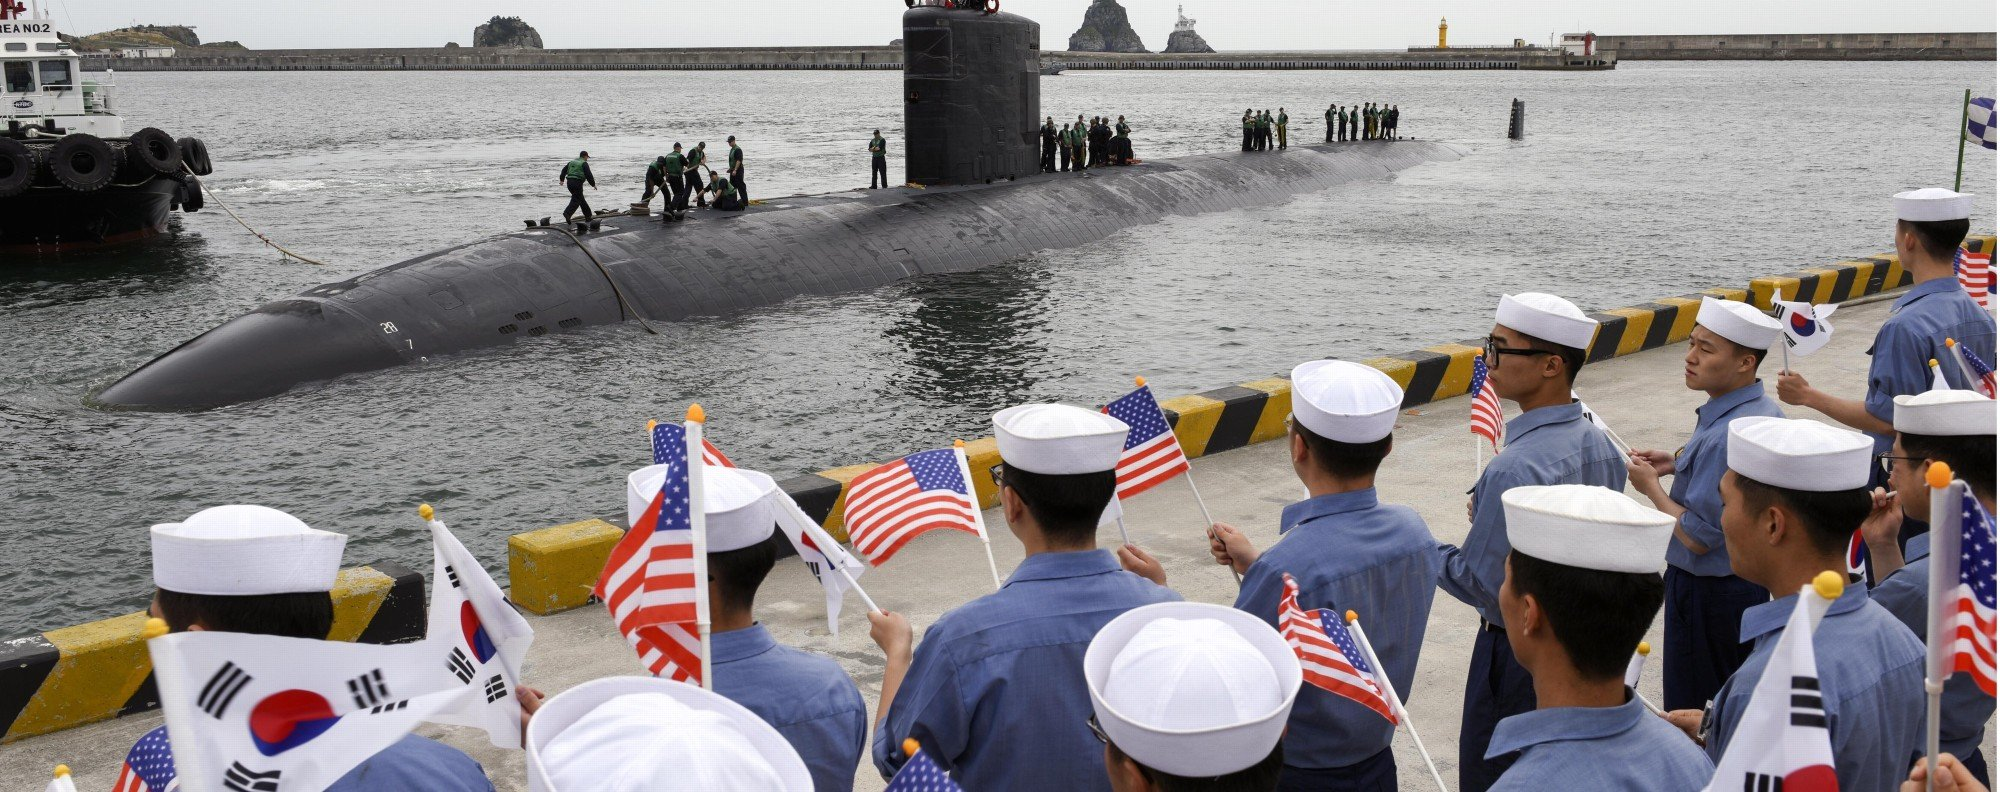 The USS Cheyenne arrives in South Korea. Photo: AFP